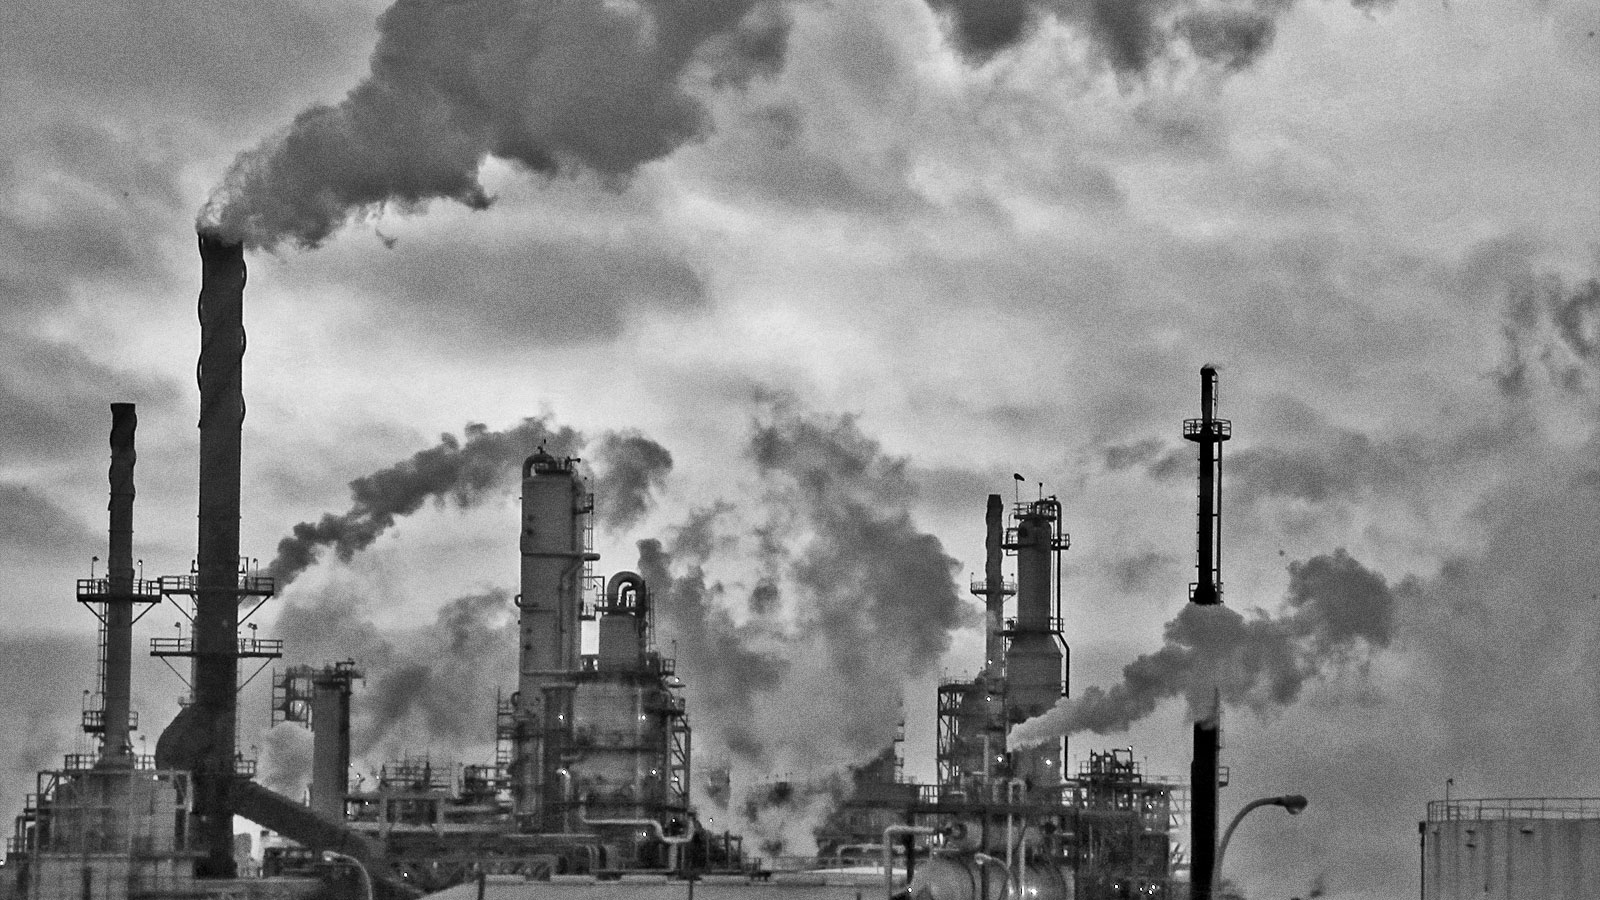 Black and white photo of an oil refinery